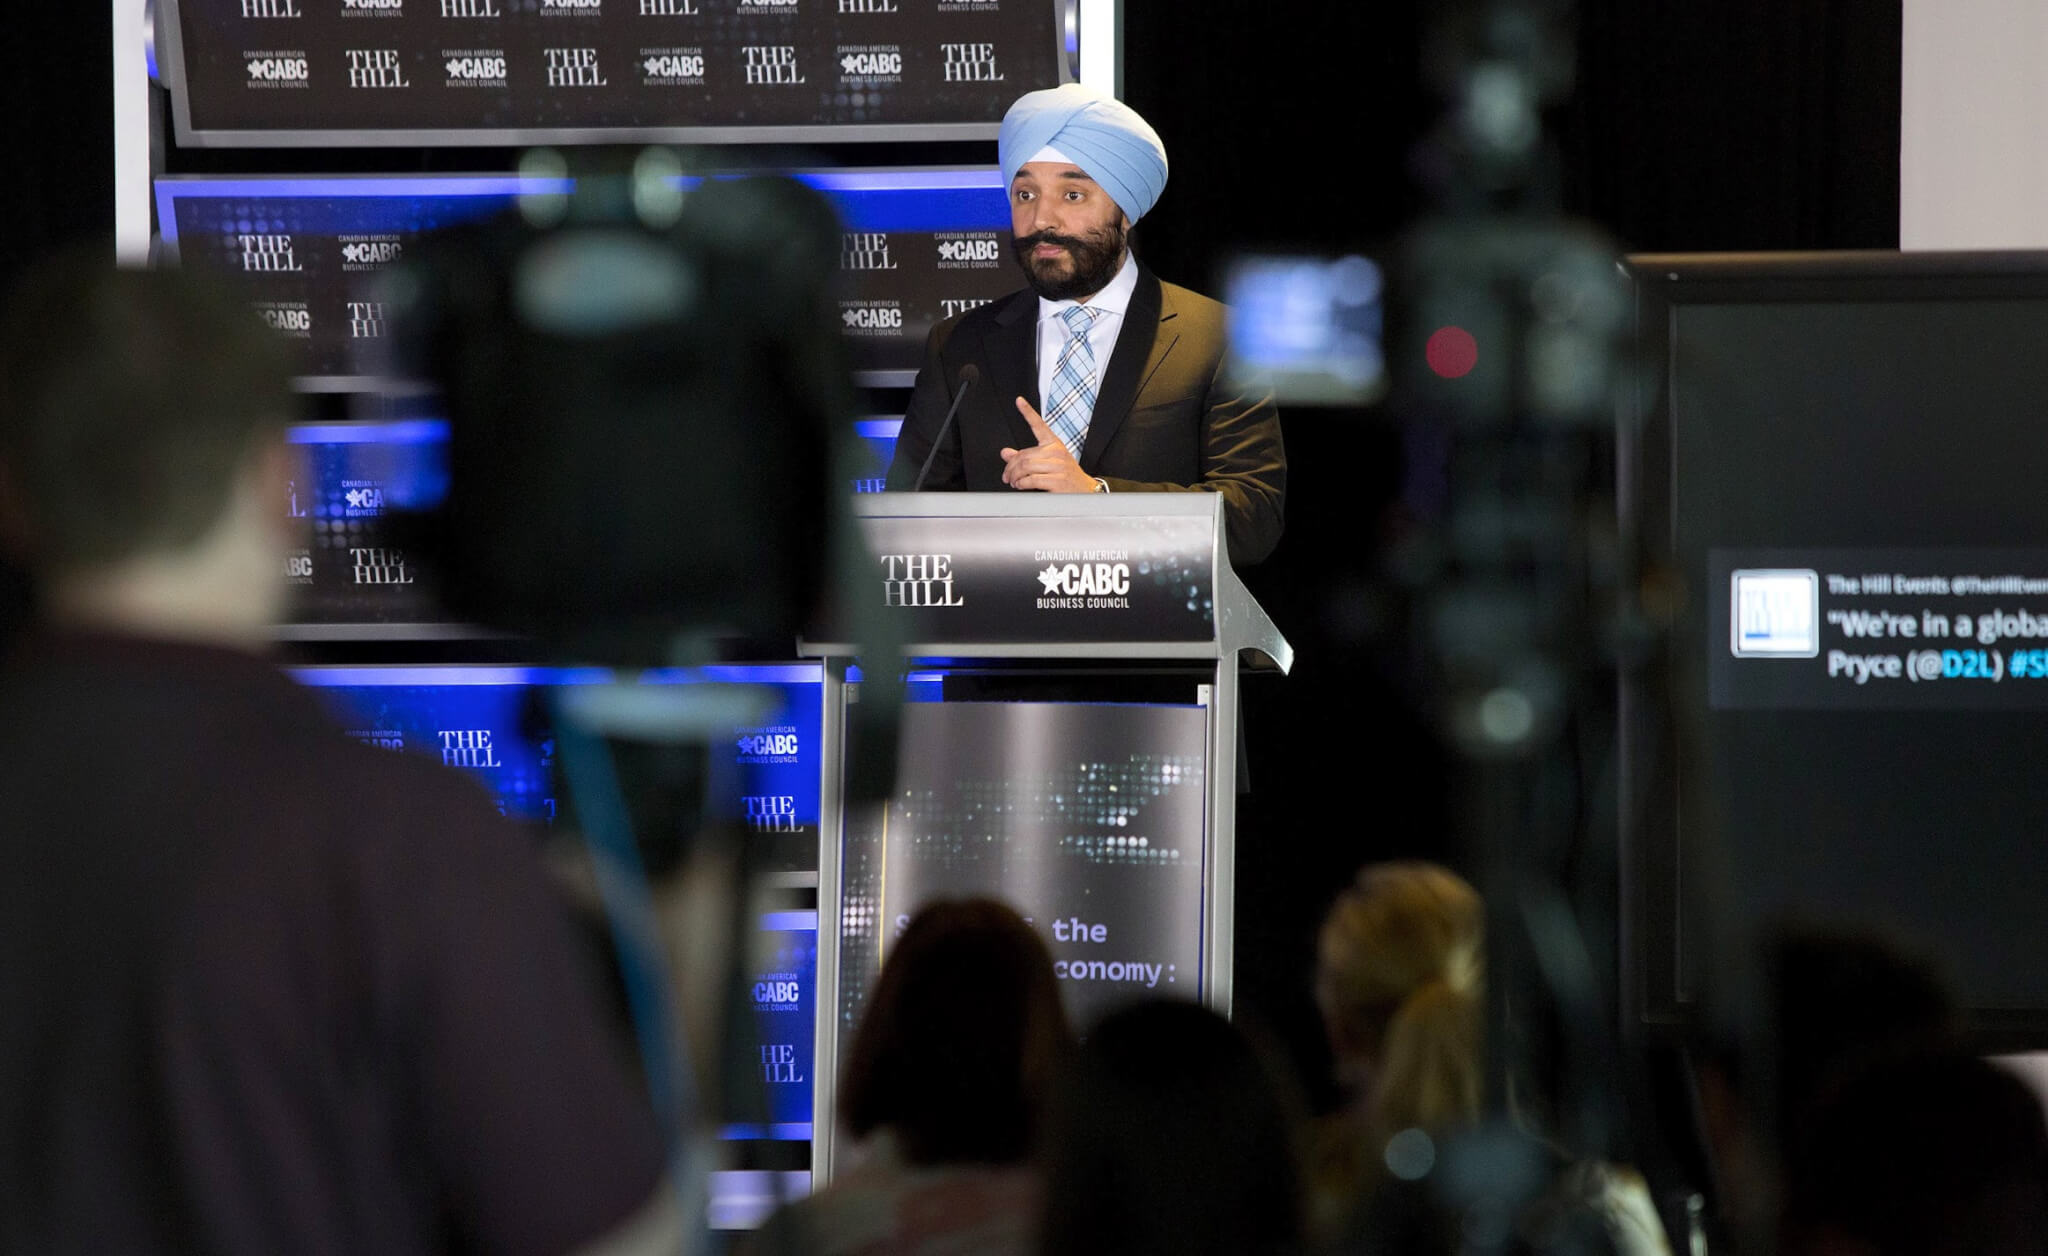 Canadian Innovation Minister Navdeep Bains at a CABC/Hill event in Washington, DC